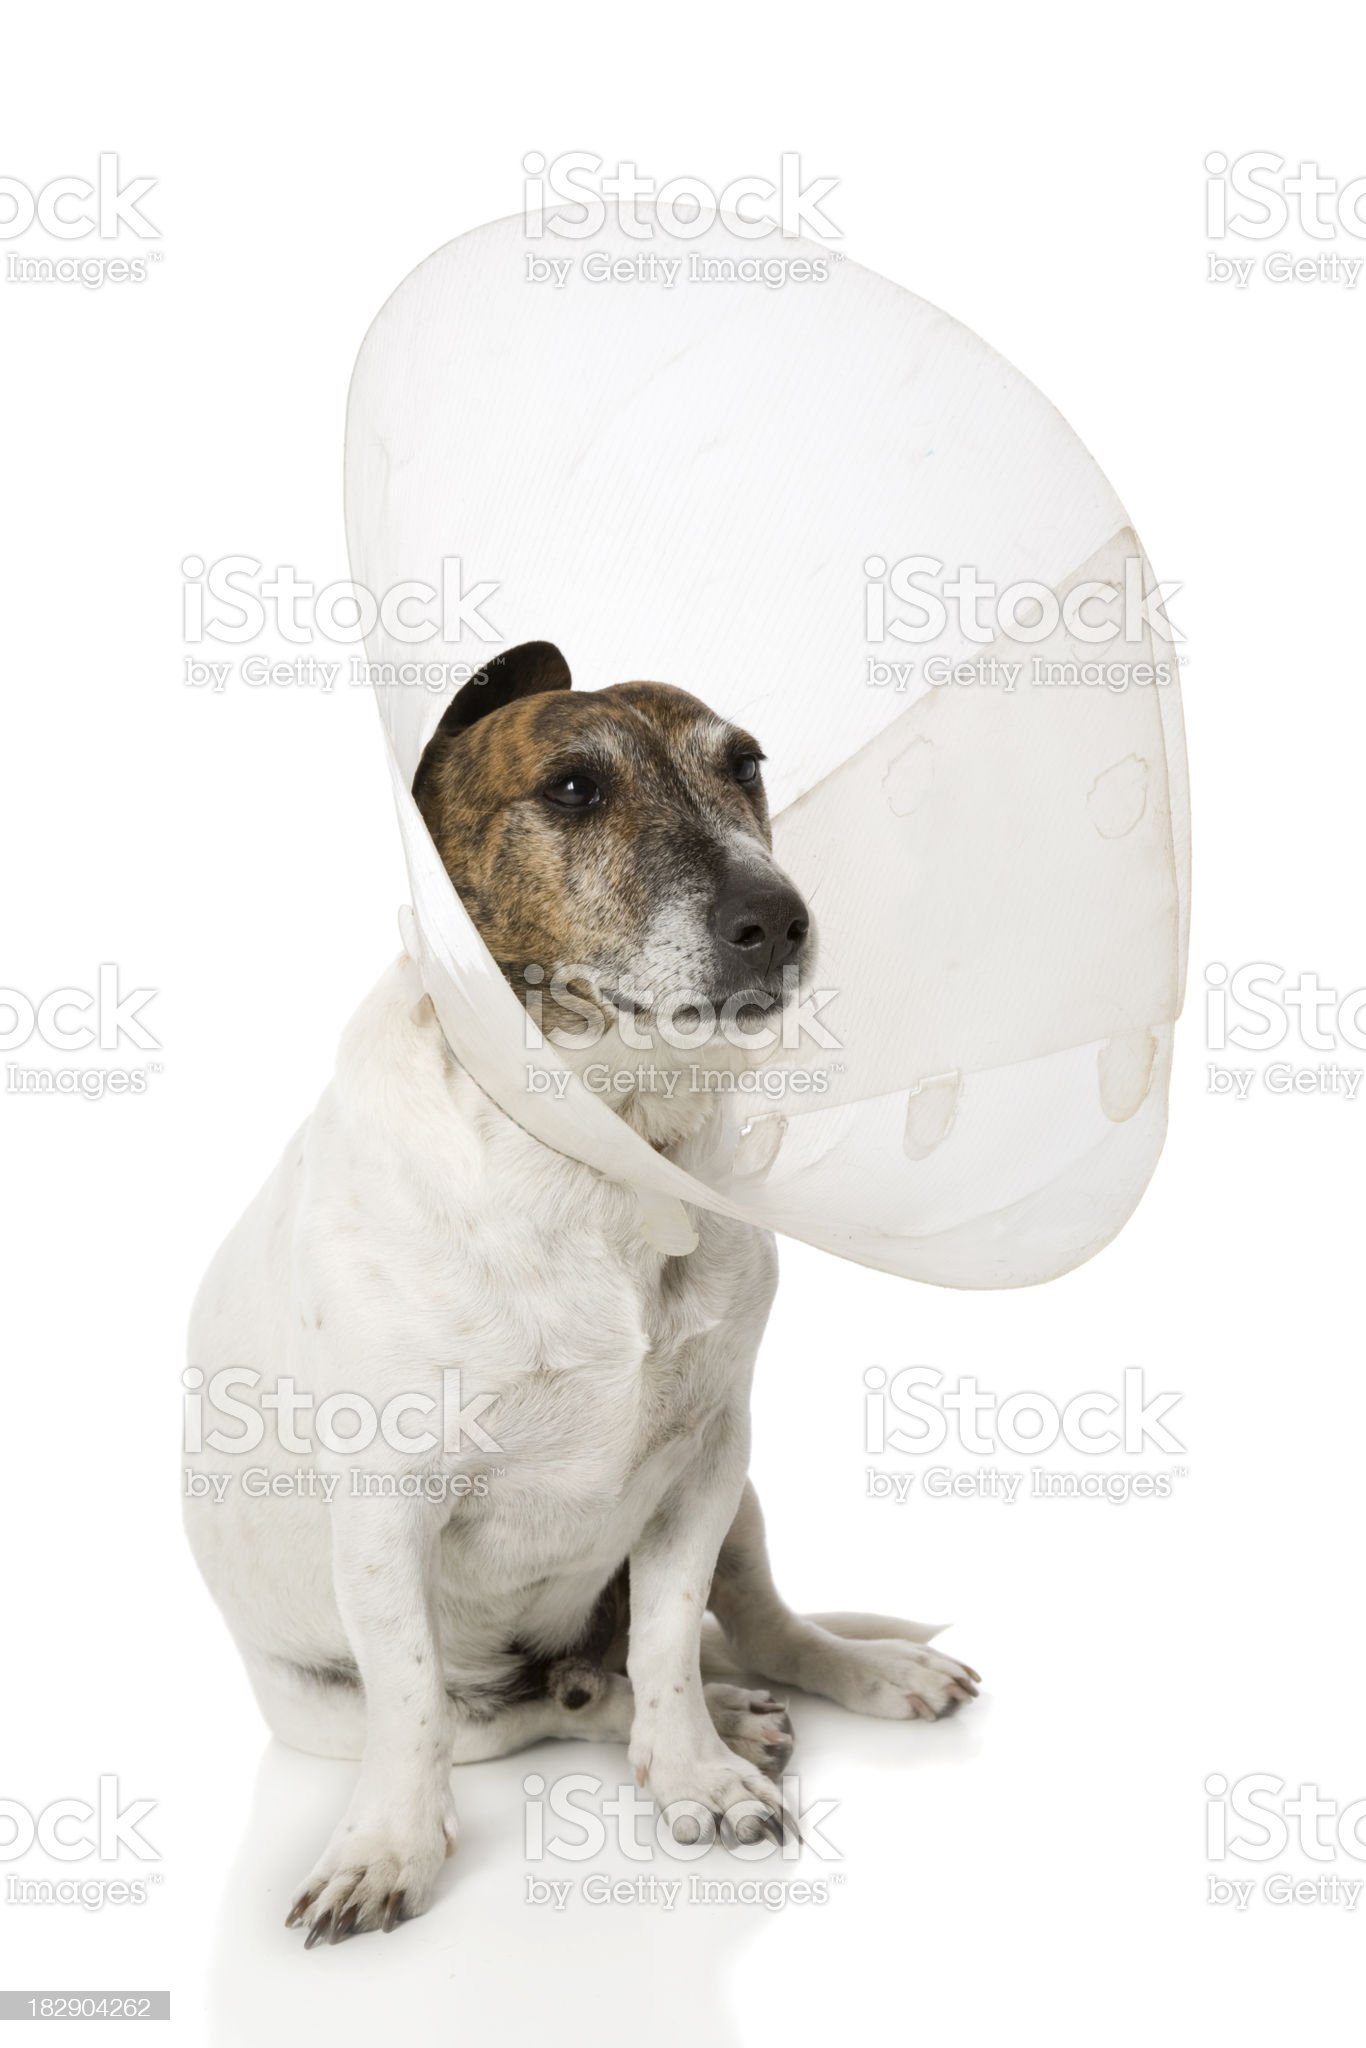 Cone Head Canine royalty-free stock photo